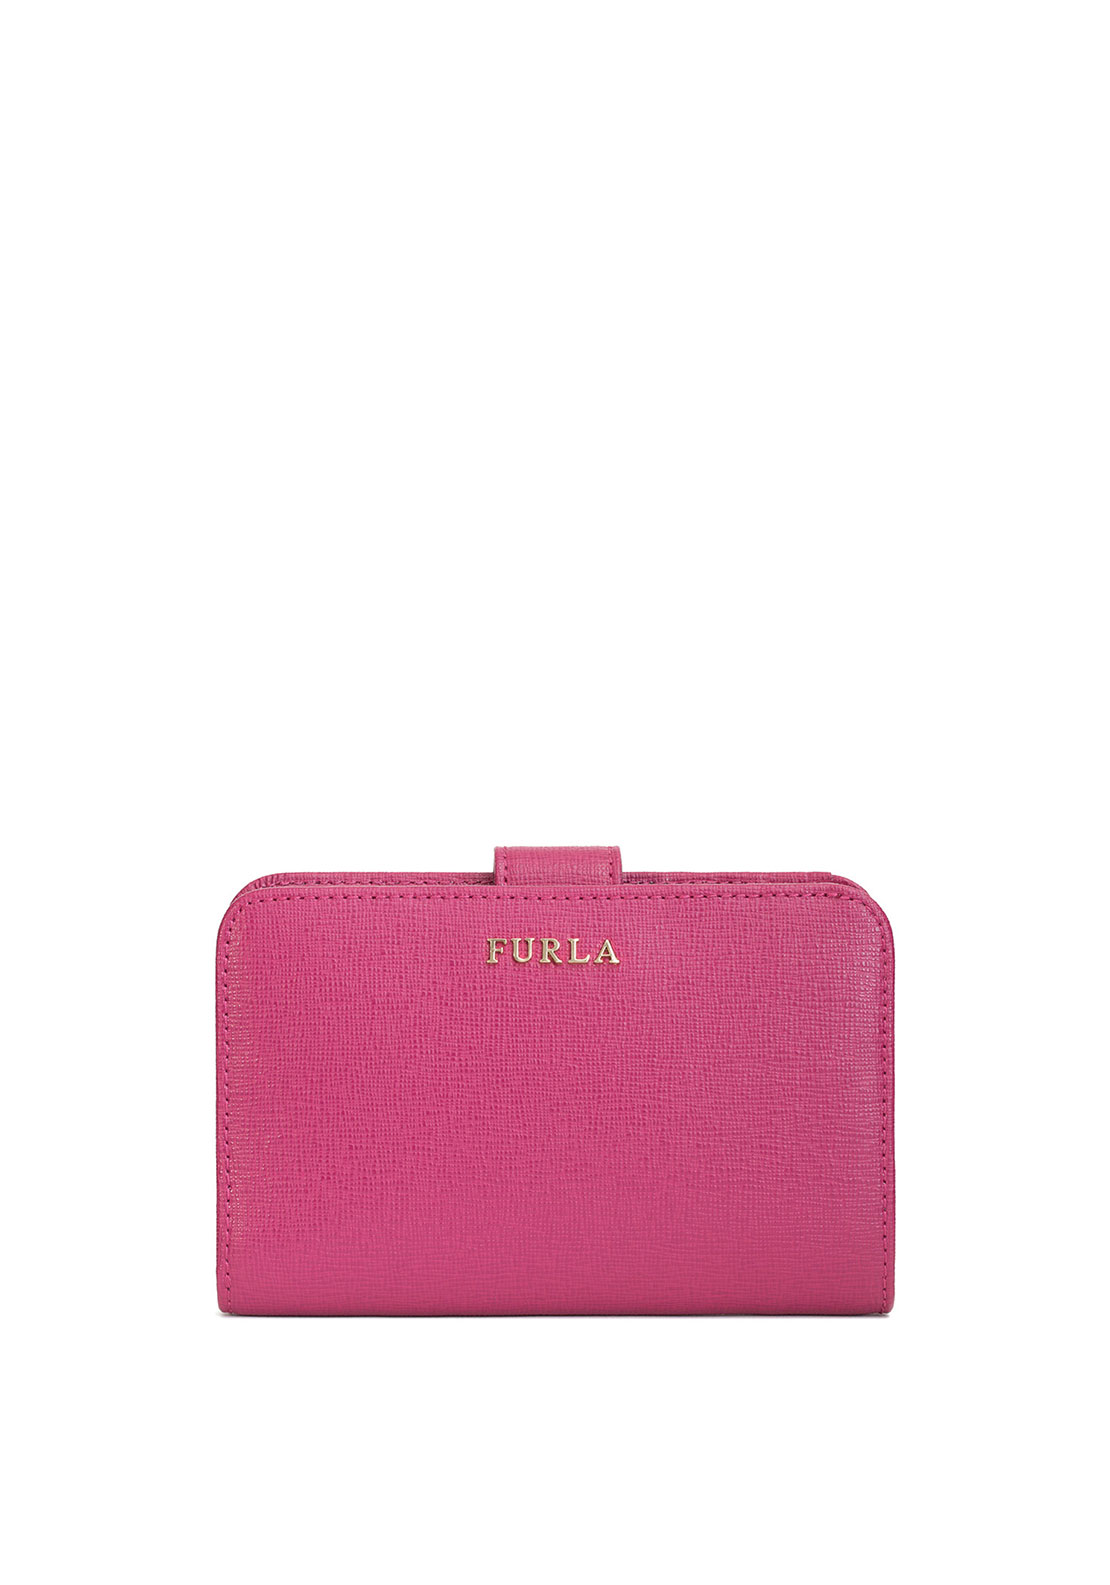 Furla Babylon Leather Fold over Purse, Pink